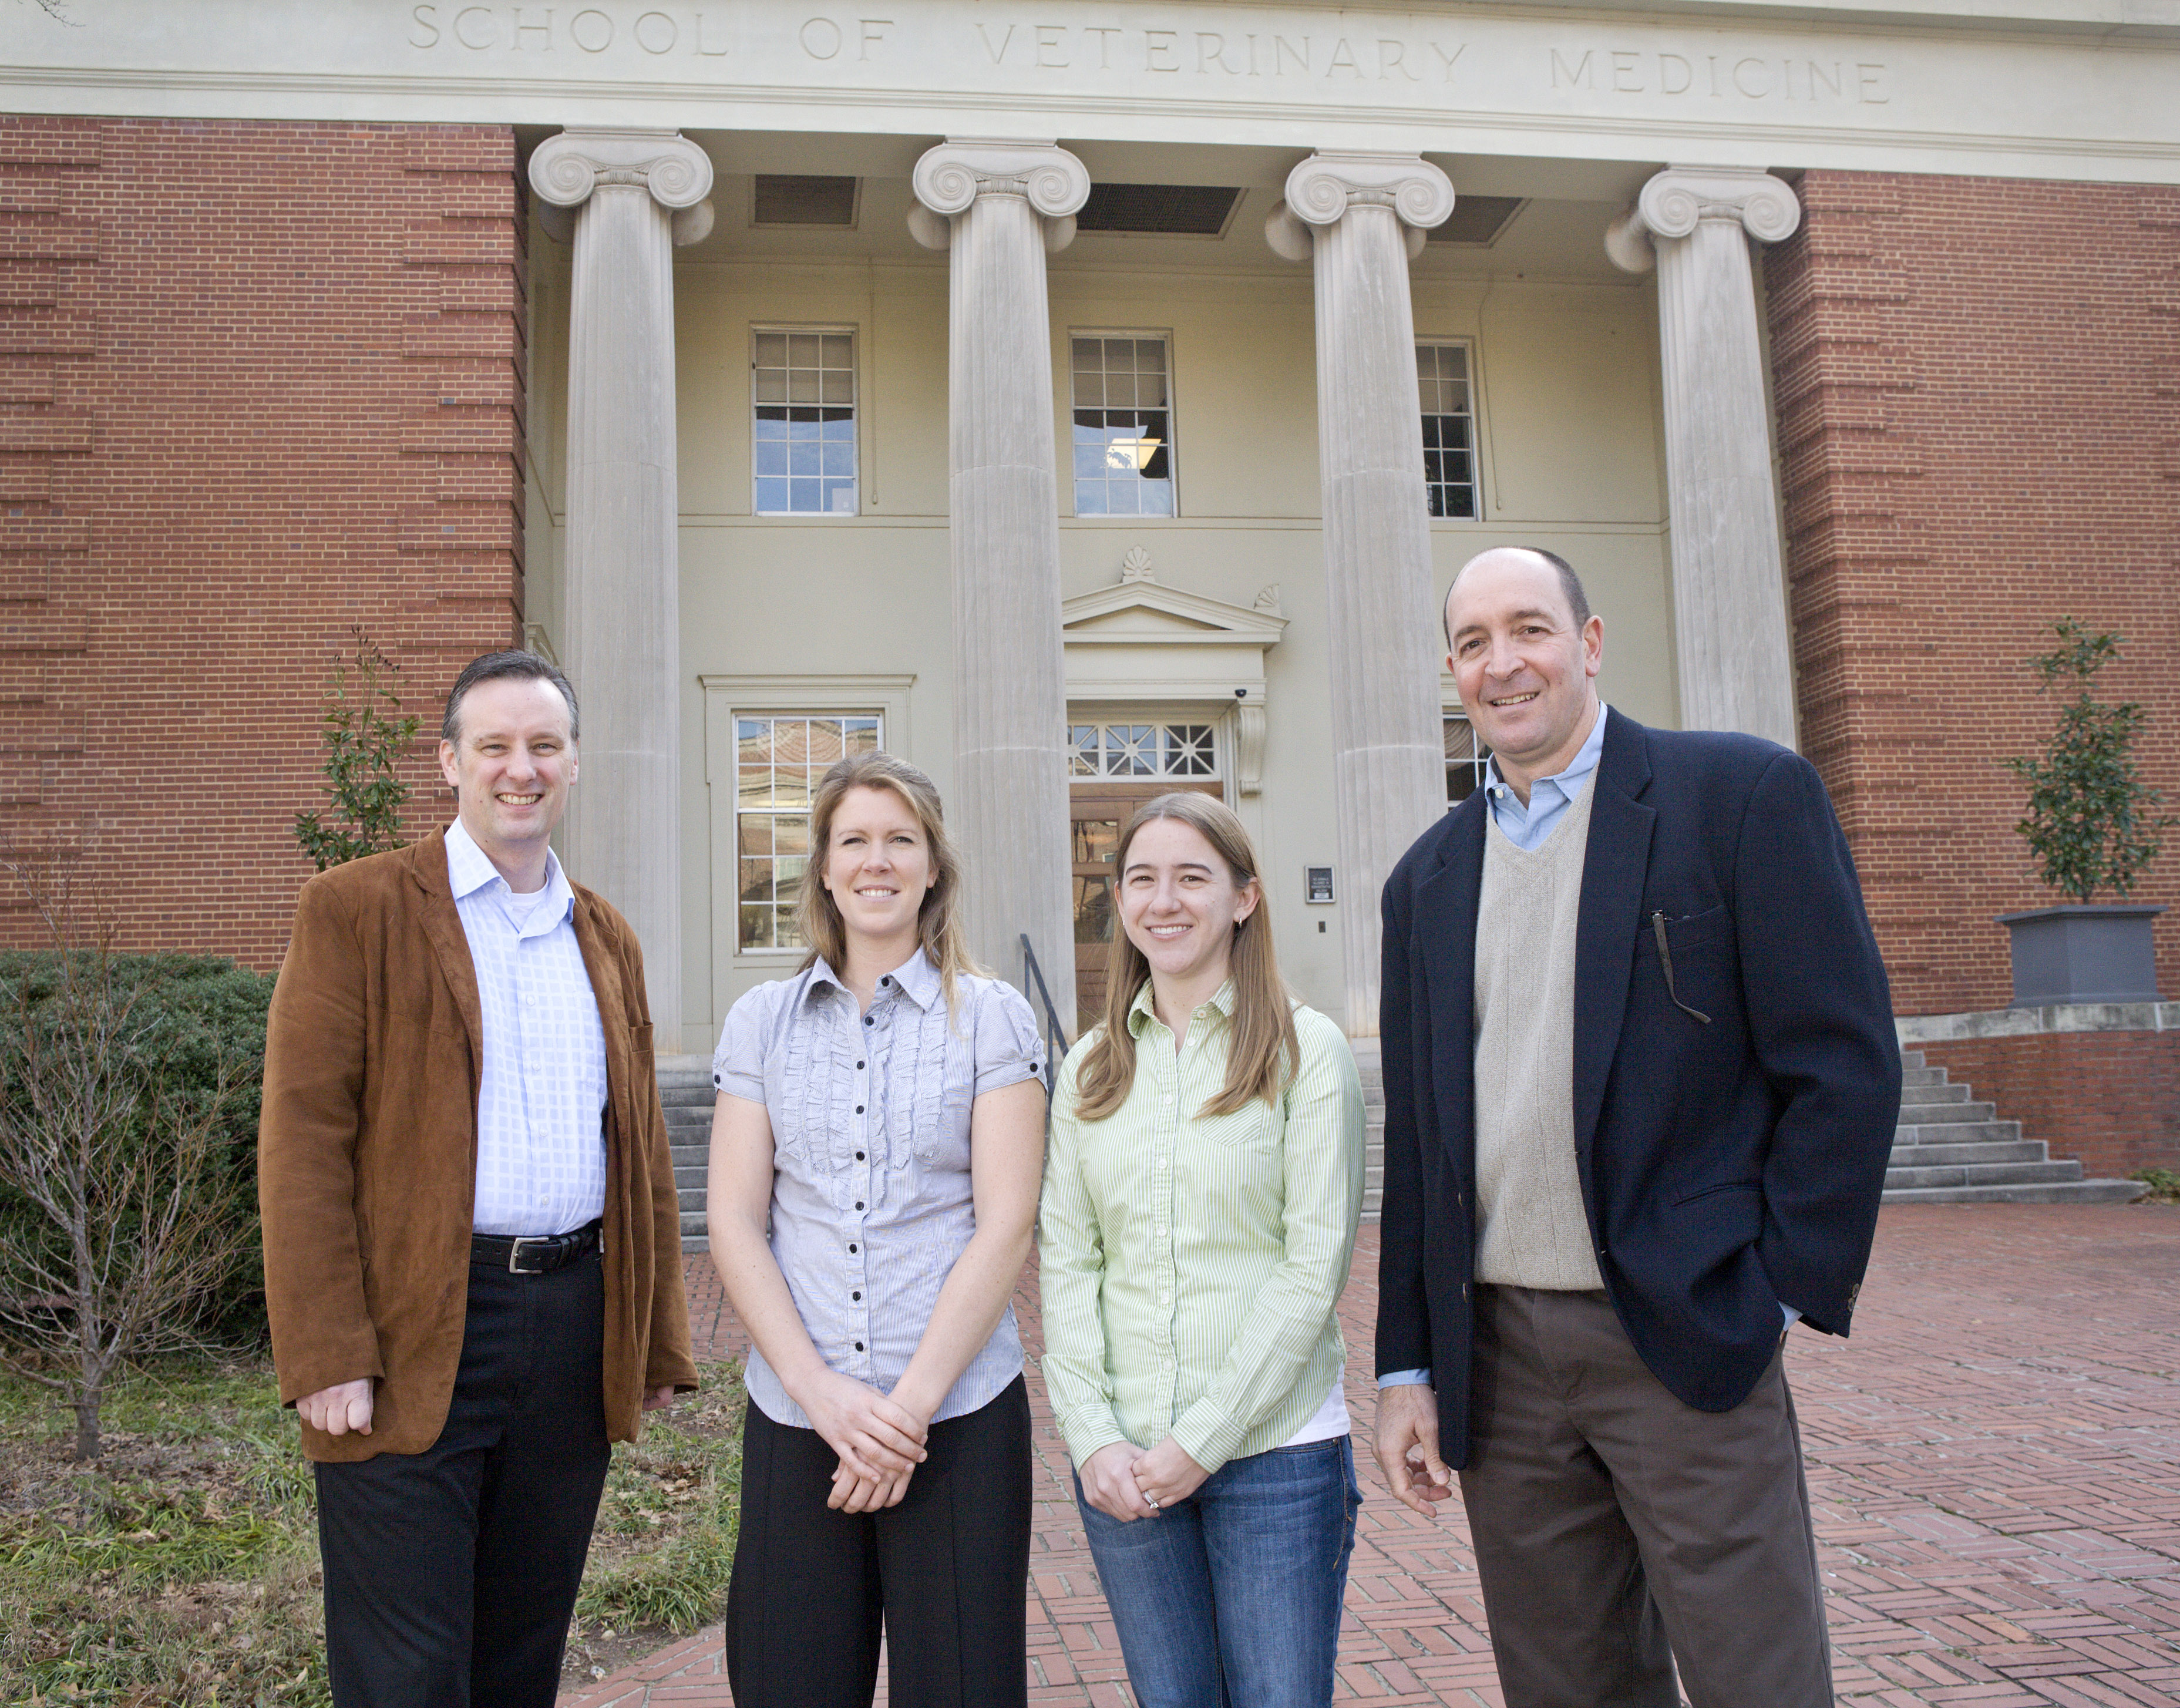 A team of UGA researchers created a new 'fracture putty' to speed healing of bone fractures. (L-R Steve Stice, Jennifer Mumaw, Erin Jordan, John Peroni.)